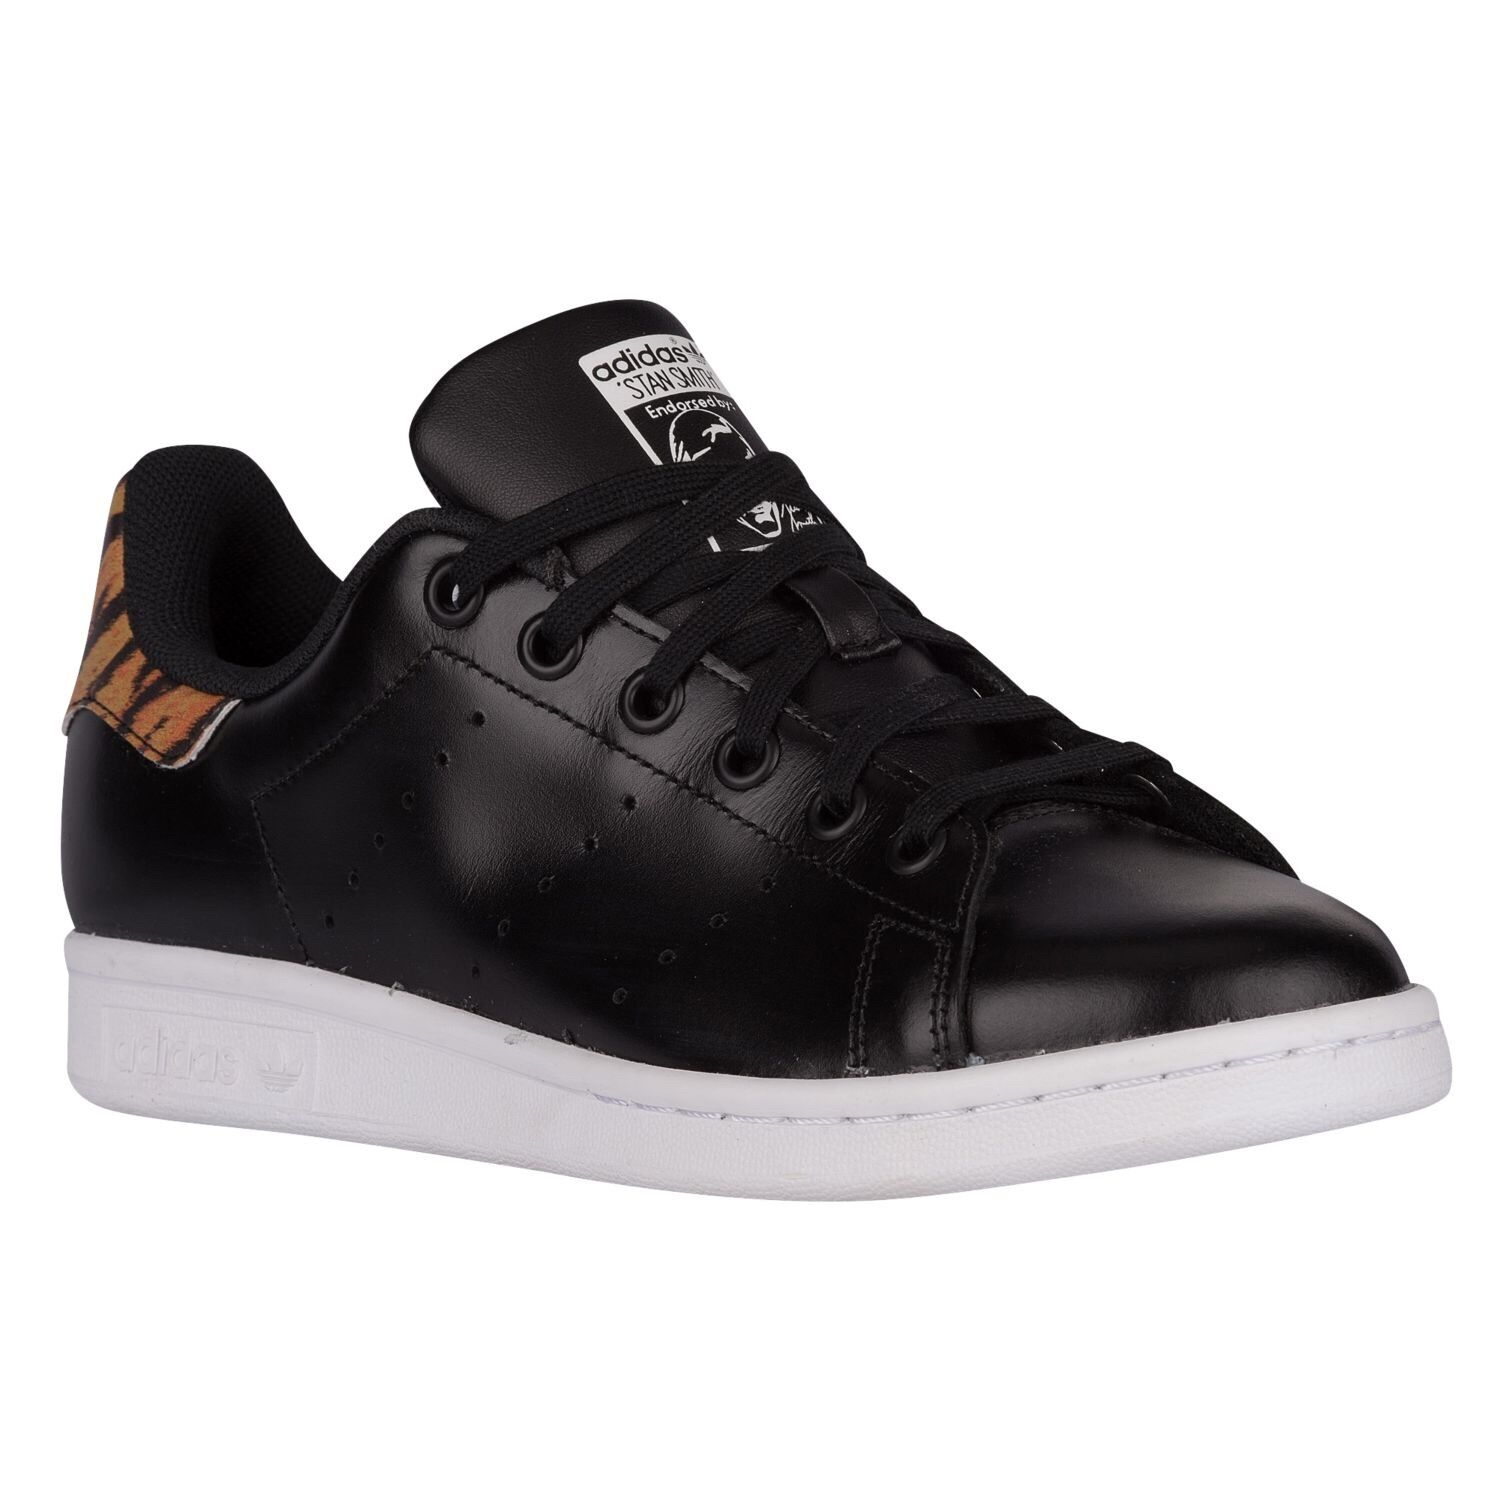 Juniors femmes Girls Trainer AQ296 Adidas 1/2 Stan Smith GS Tiger trainers5 1/2 Adidas 7665e7